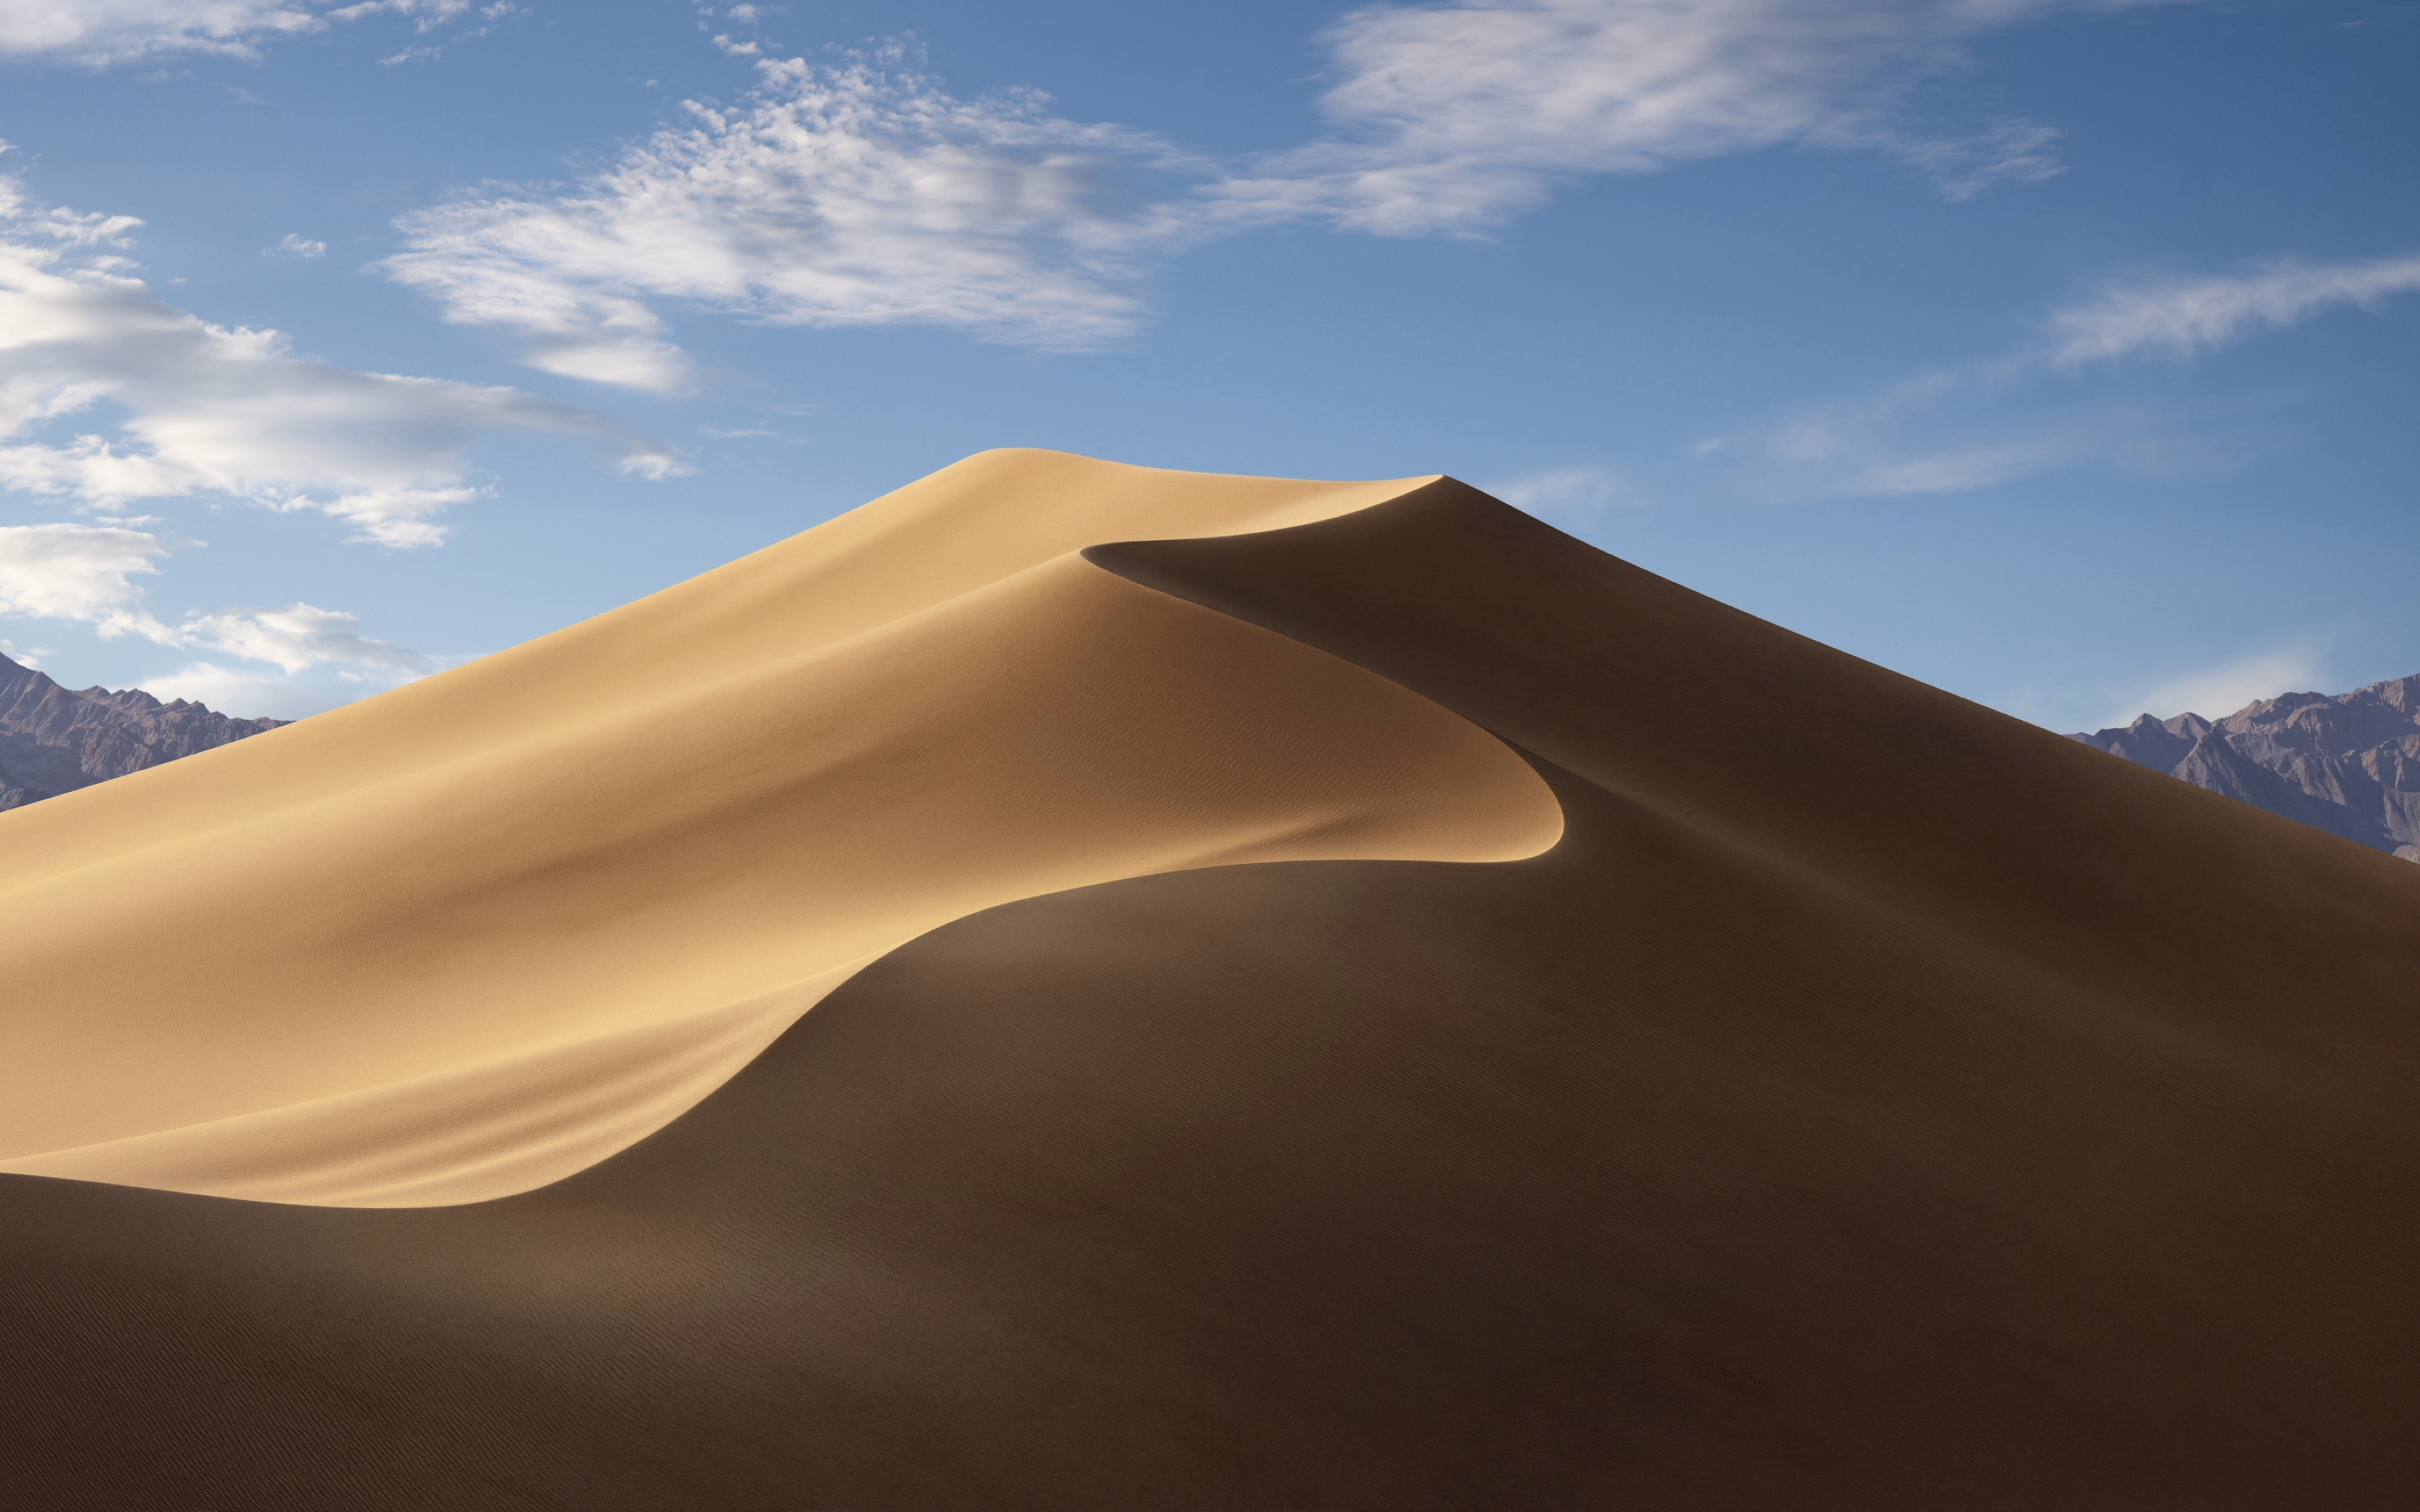 macOS Mojave Wallpaper Mid Day